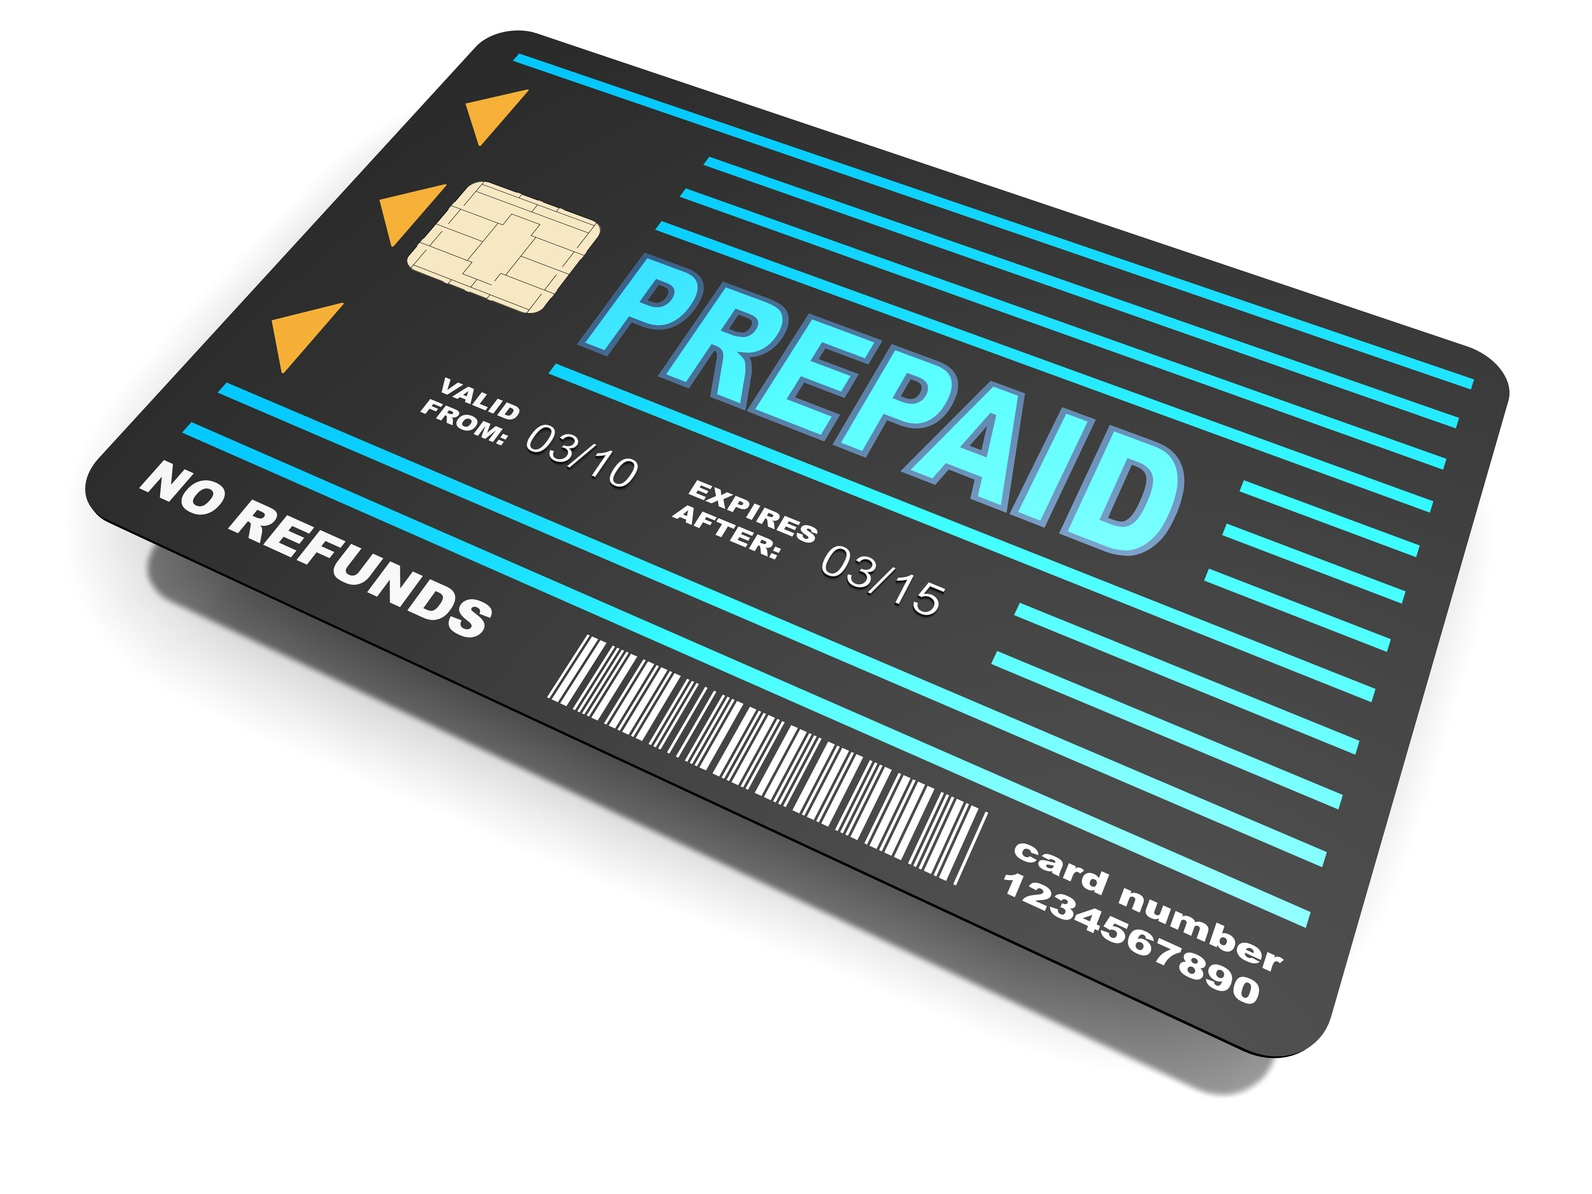 In 2009, 45% of Consumers Bought Prepaid or Gift Cards - How Many Do Today?